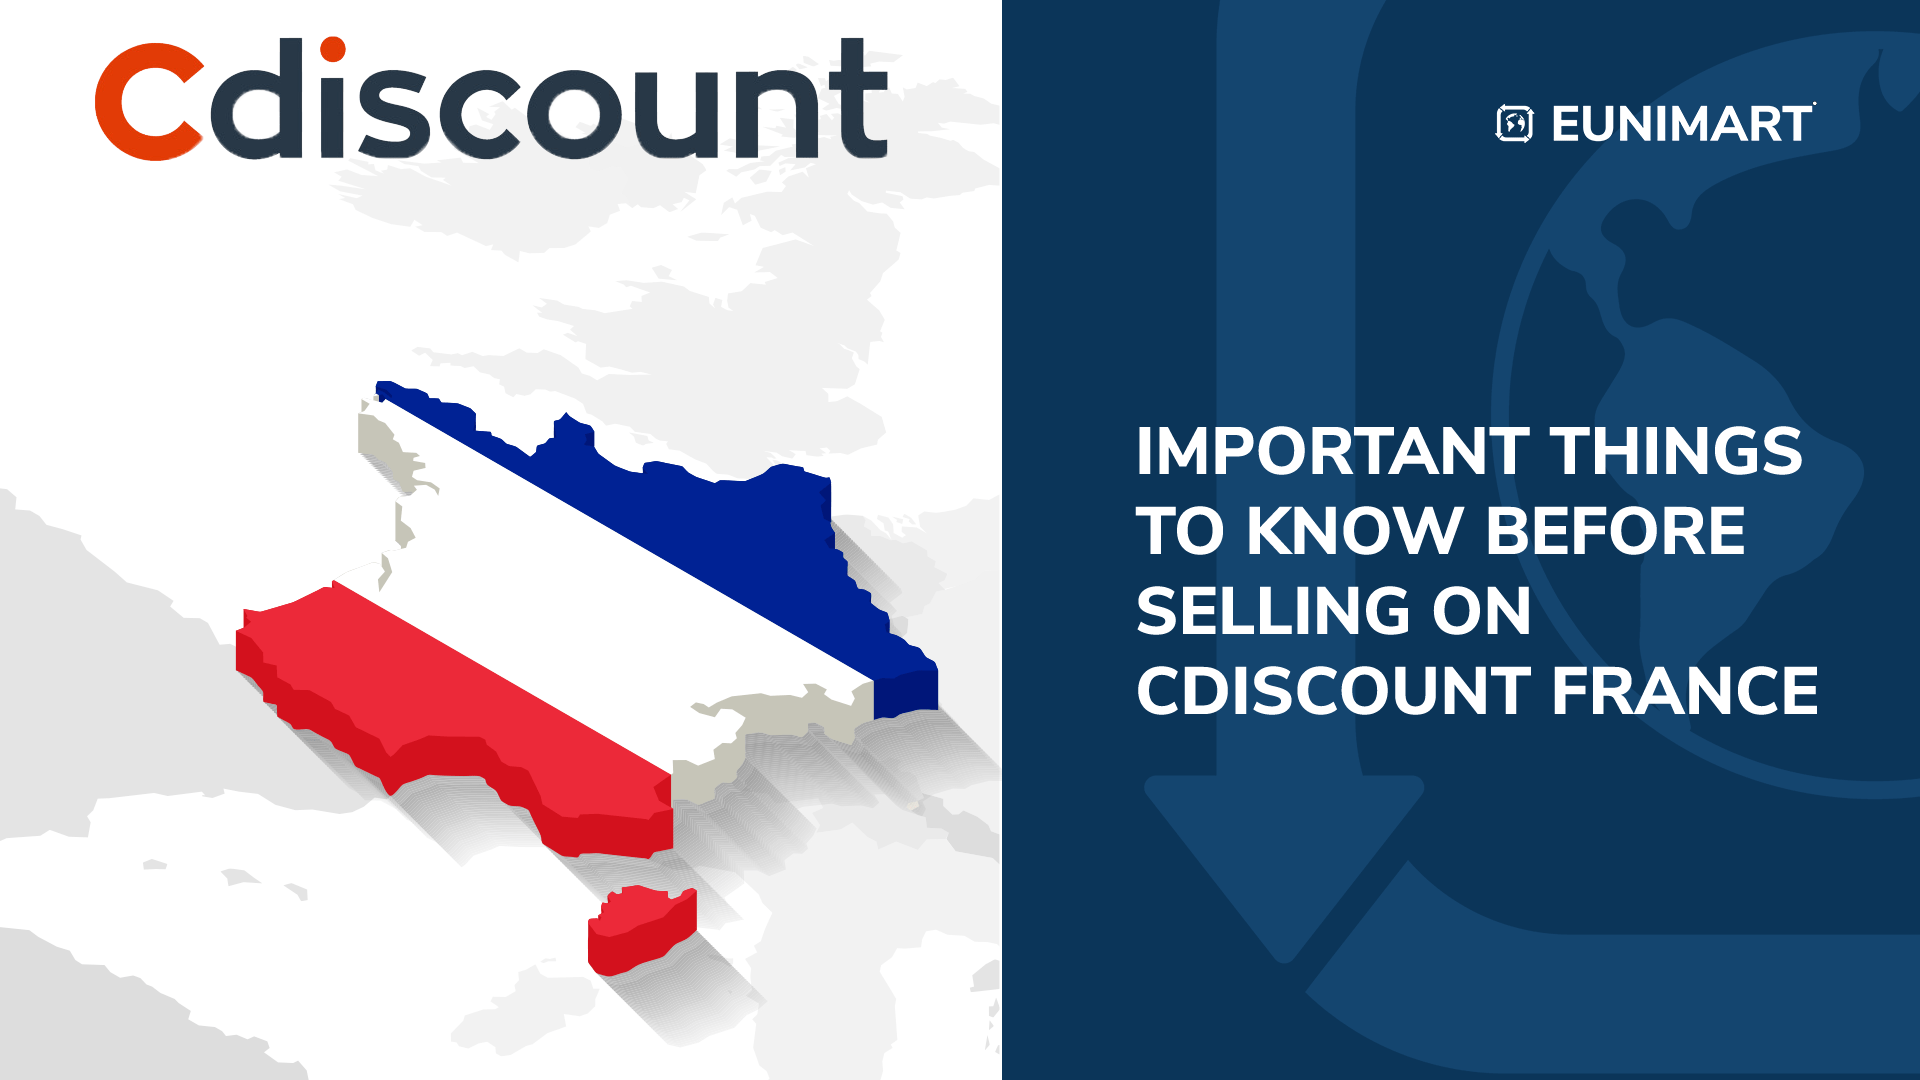 Important Things to Know Before Selling on Cdiscount France